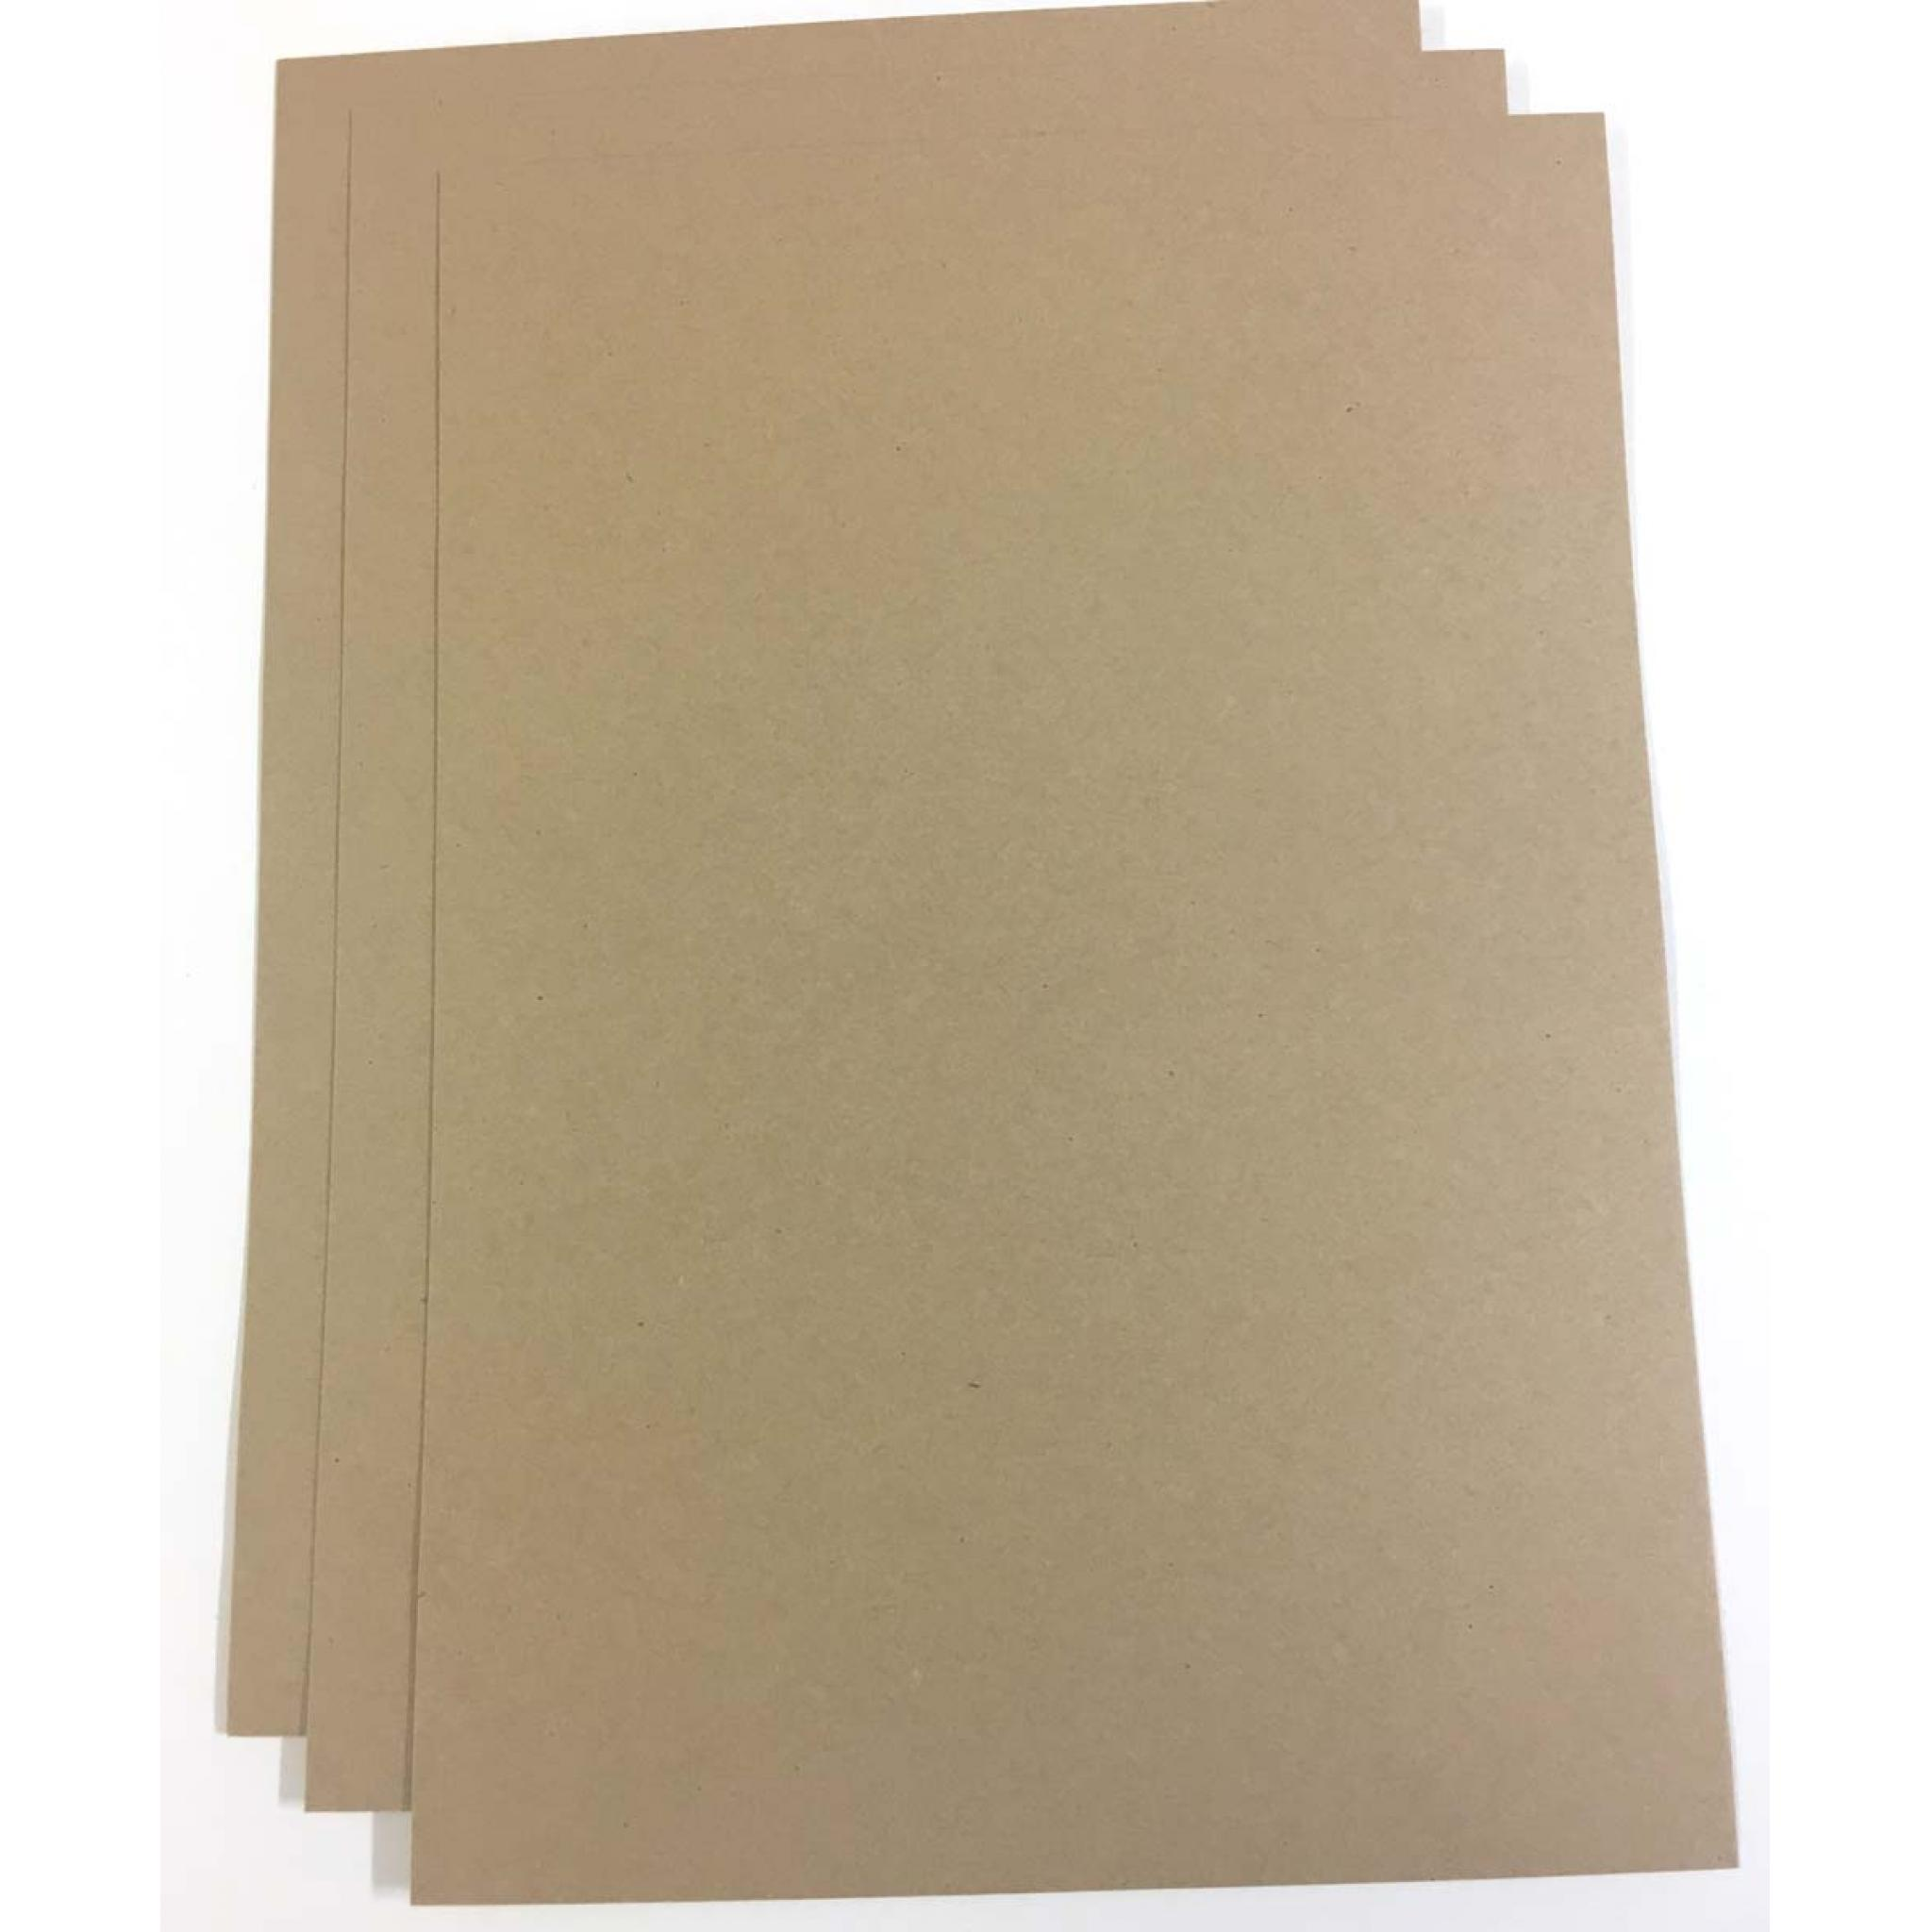 100/% RECYCLED Ideal for Wedding Craft NATURAL KRAFT CARD  A4 10 SHEETS 170GSM